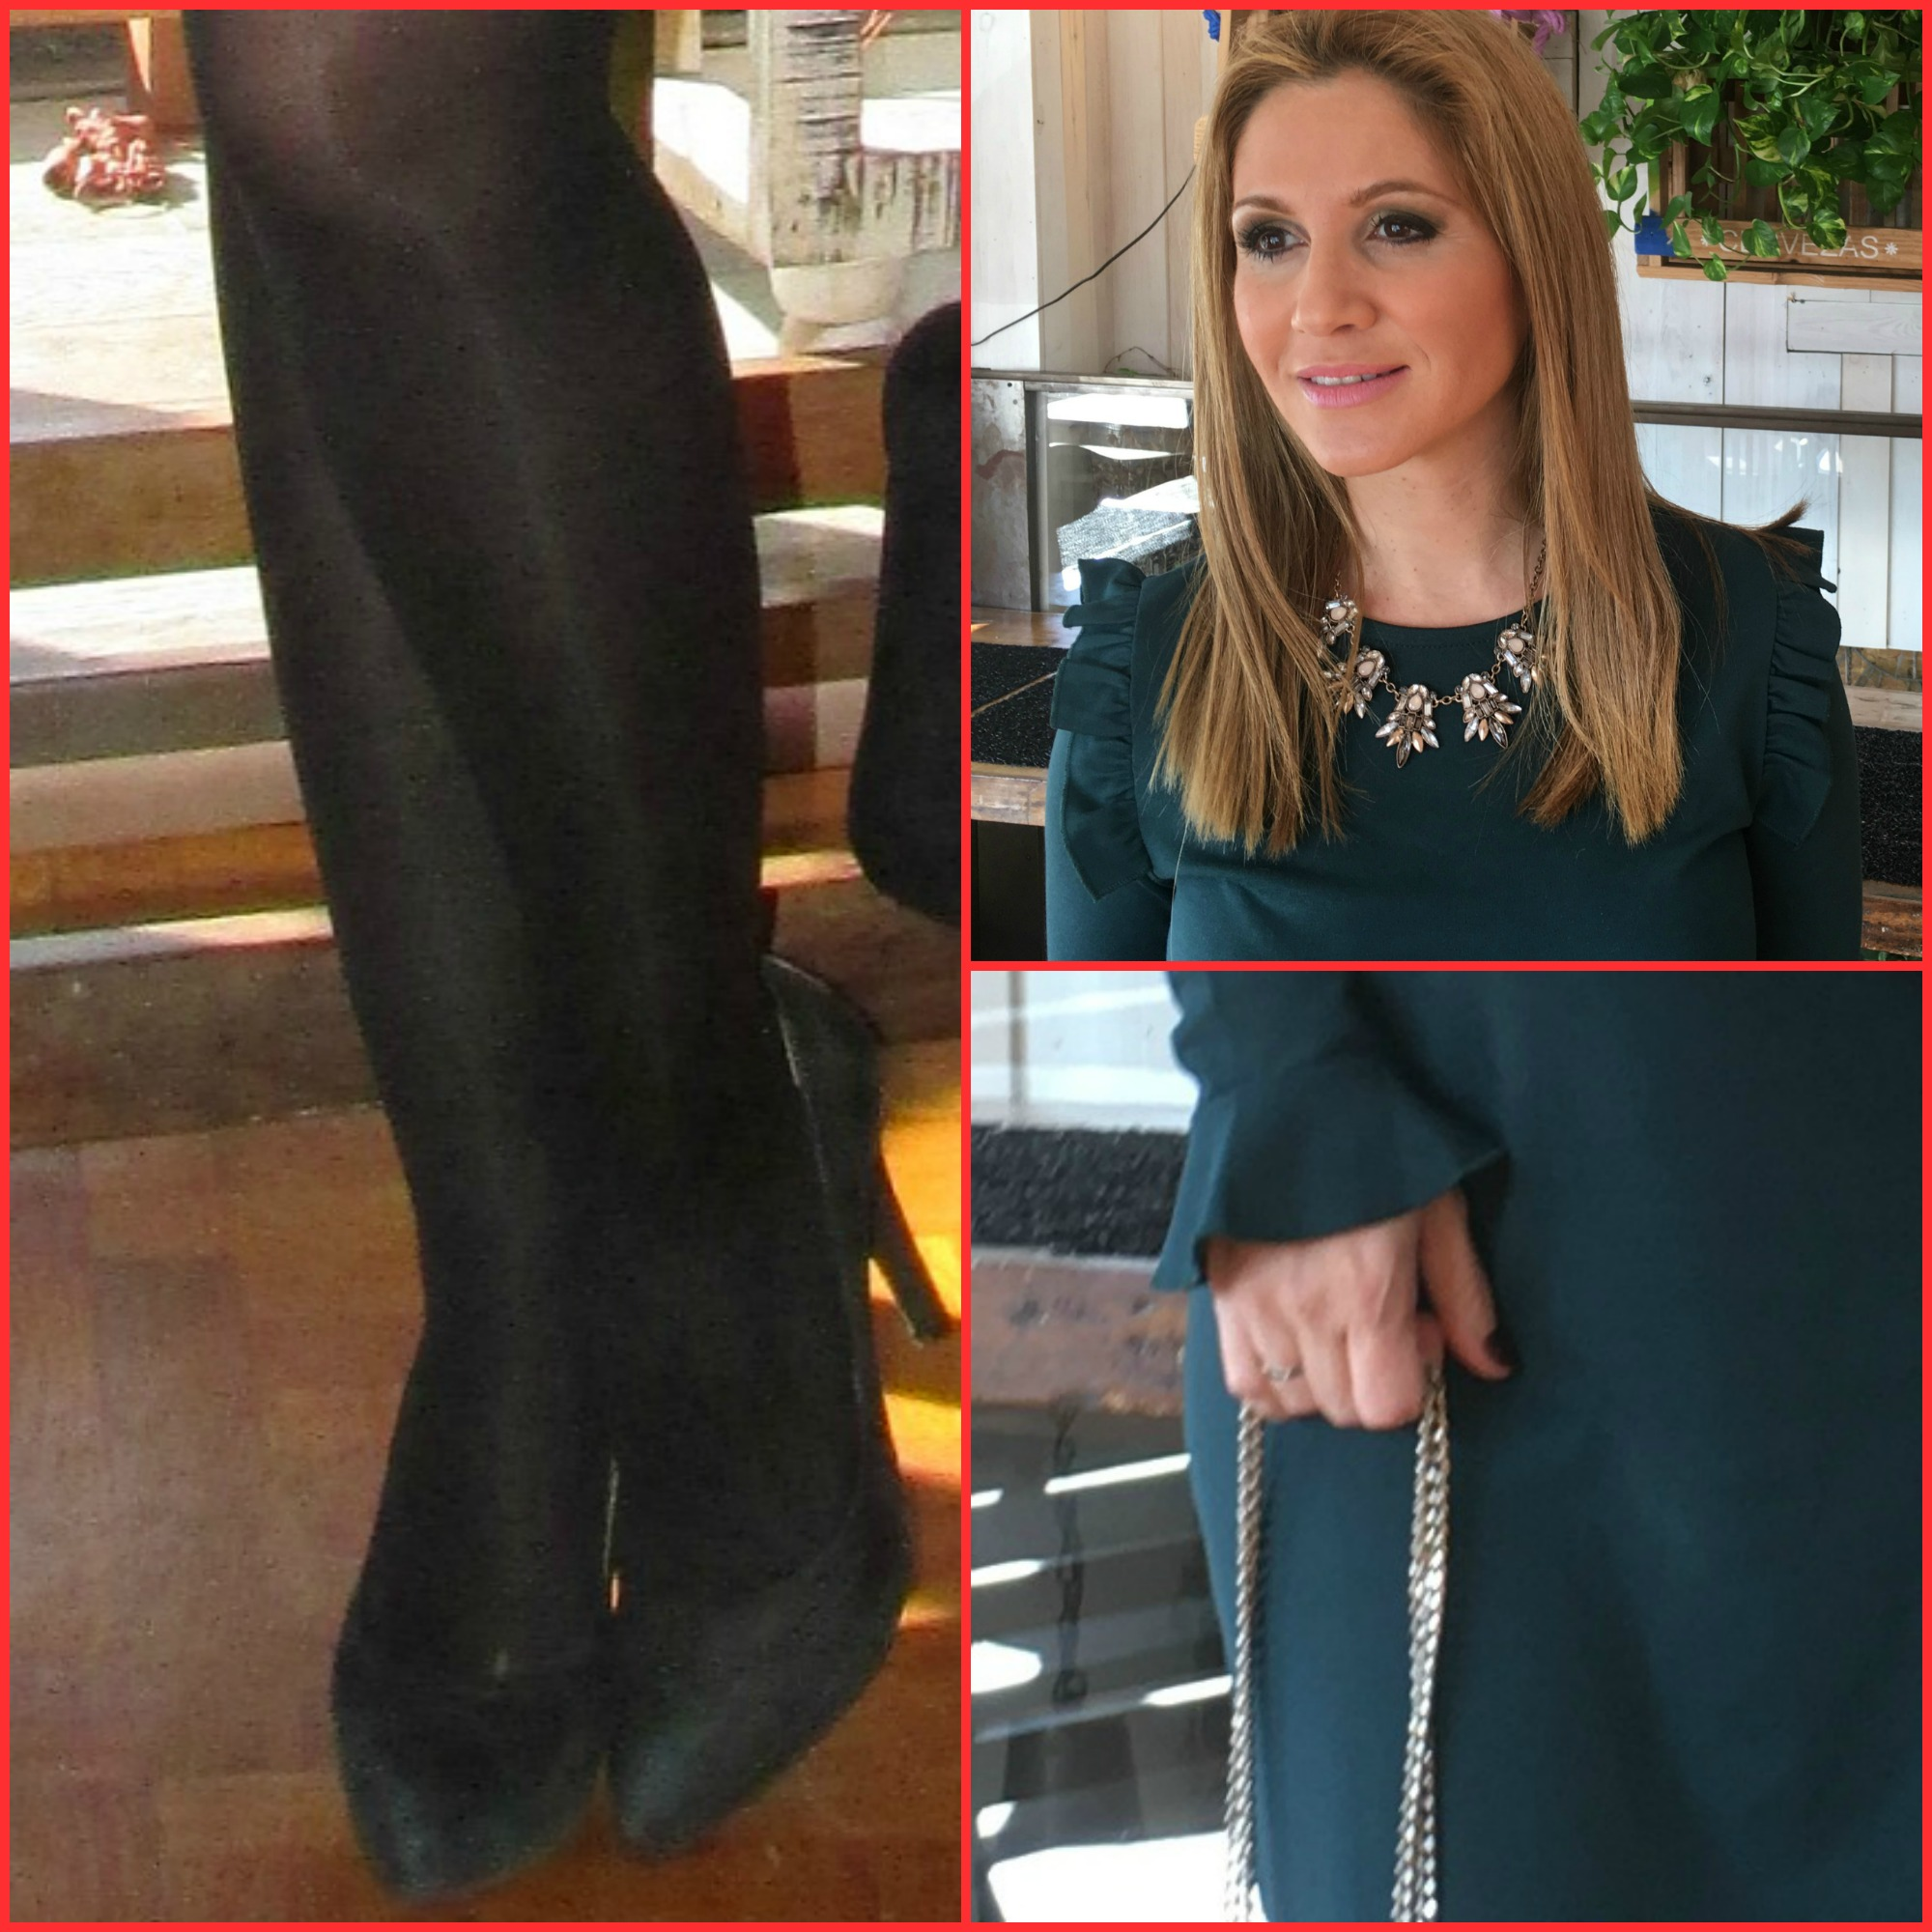 Dress: BERSKA (fall/winter ´16);Necklace: SFERA (fall/winter ´16); Shoes: MARIAN;